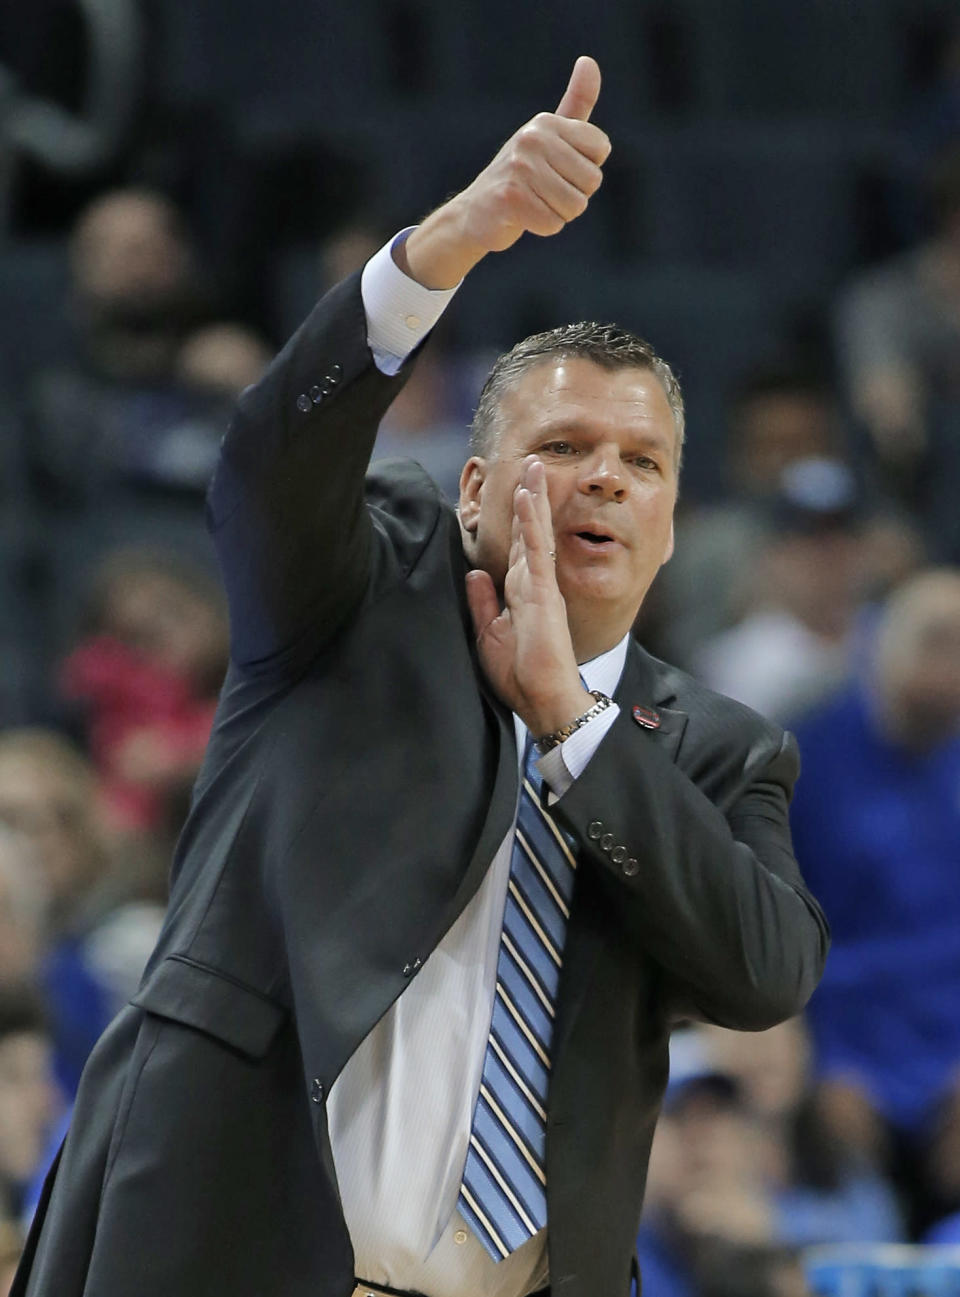 Creighton coach Greg McDermott directs his team against Kansas State during the first half of a first-round game in the NCAA men's college basketball tournament in Charlotte, N.C., Friday, March 16, 2018. (AP Photo/Bob Leverone)